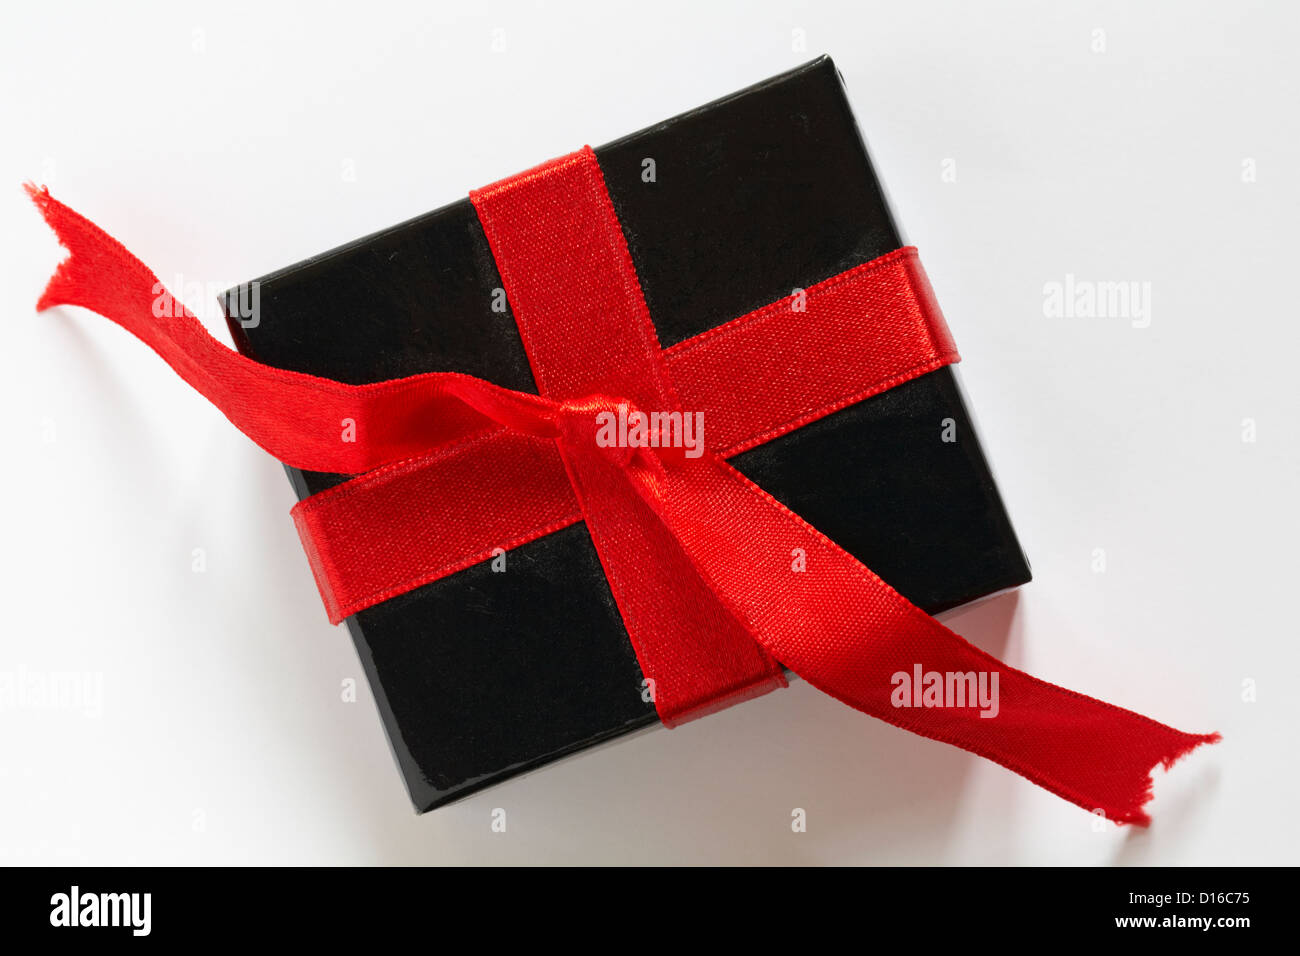 Black gift box with red ribbon isolated on white background - Stock Image